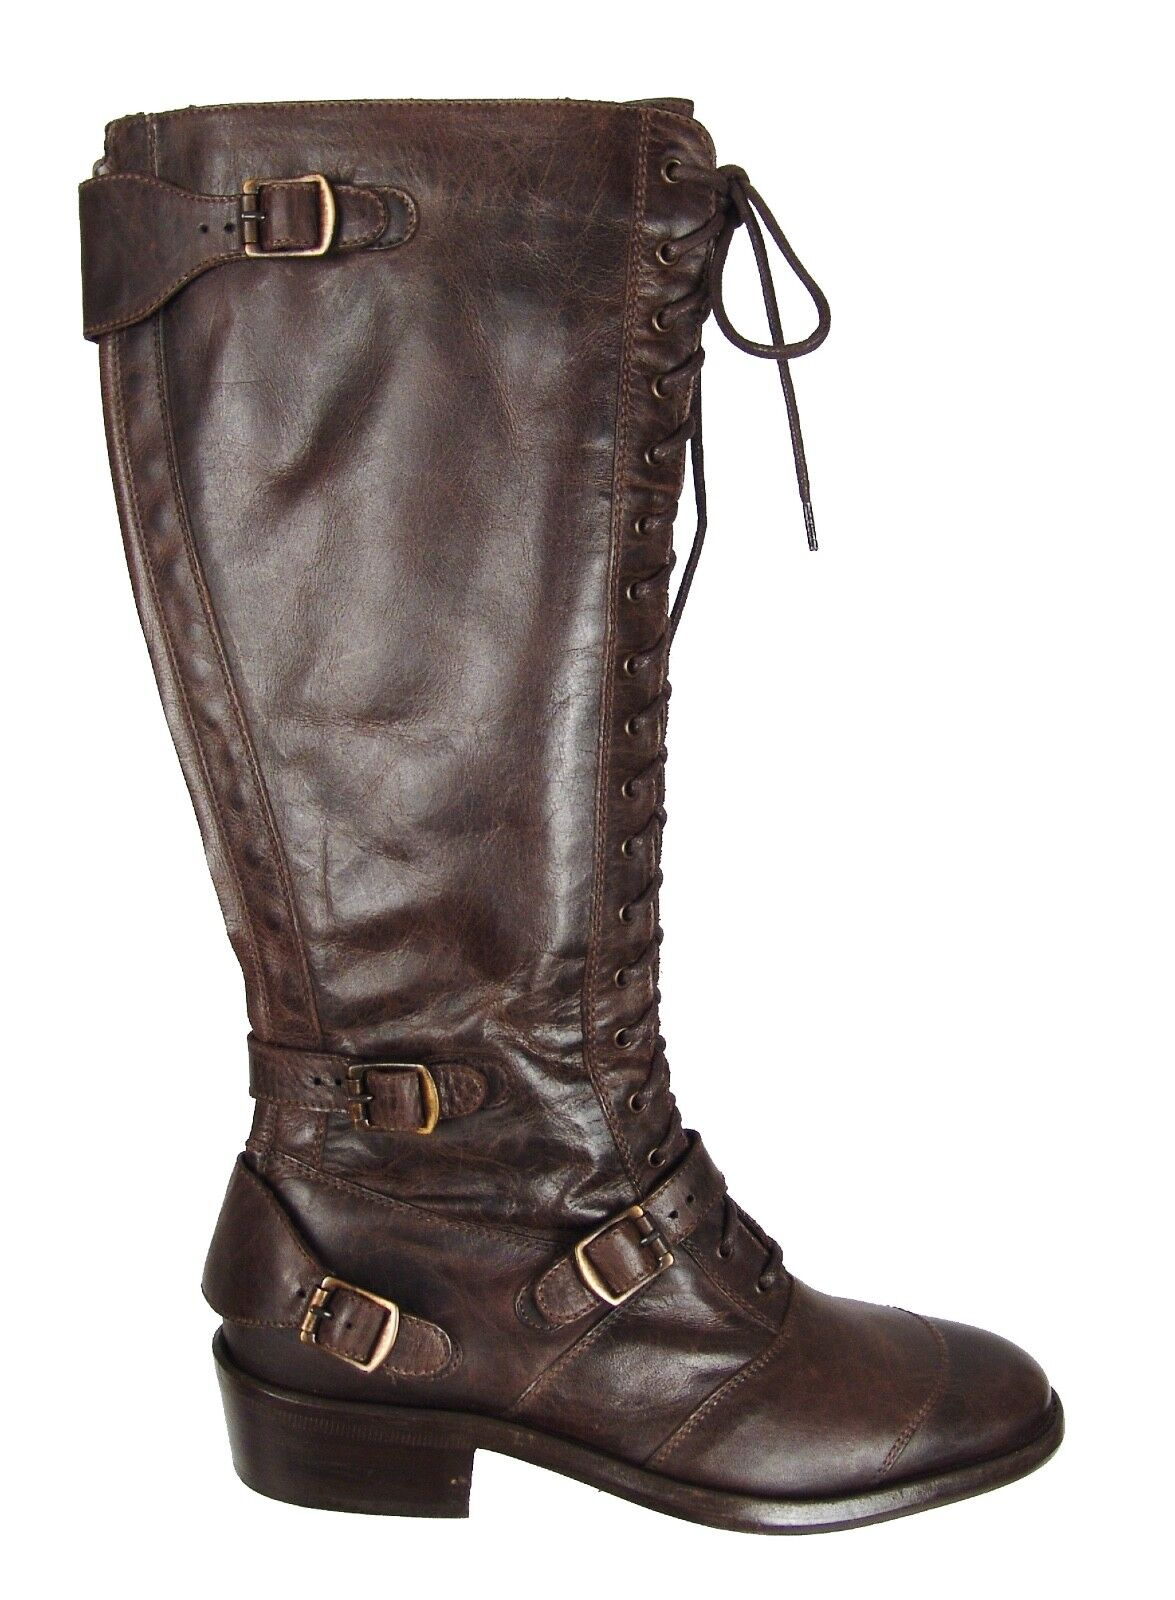 750.00 Belstaff Blackbrown Leather Lacedmaster Laced Boots shoes EU Size 37